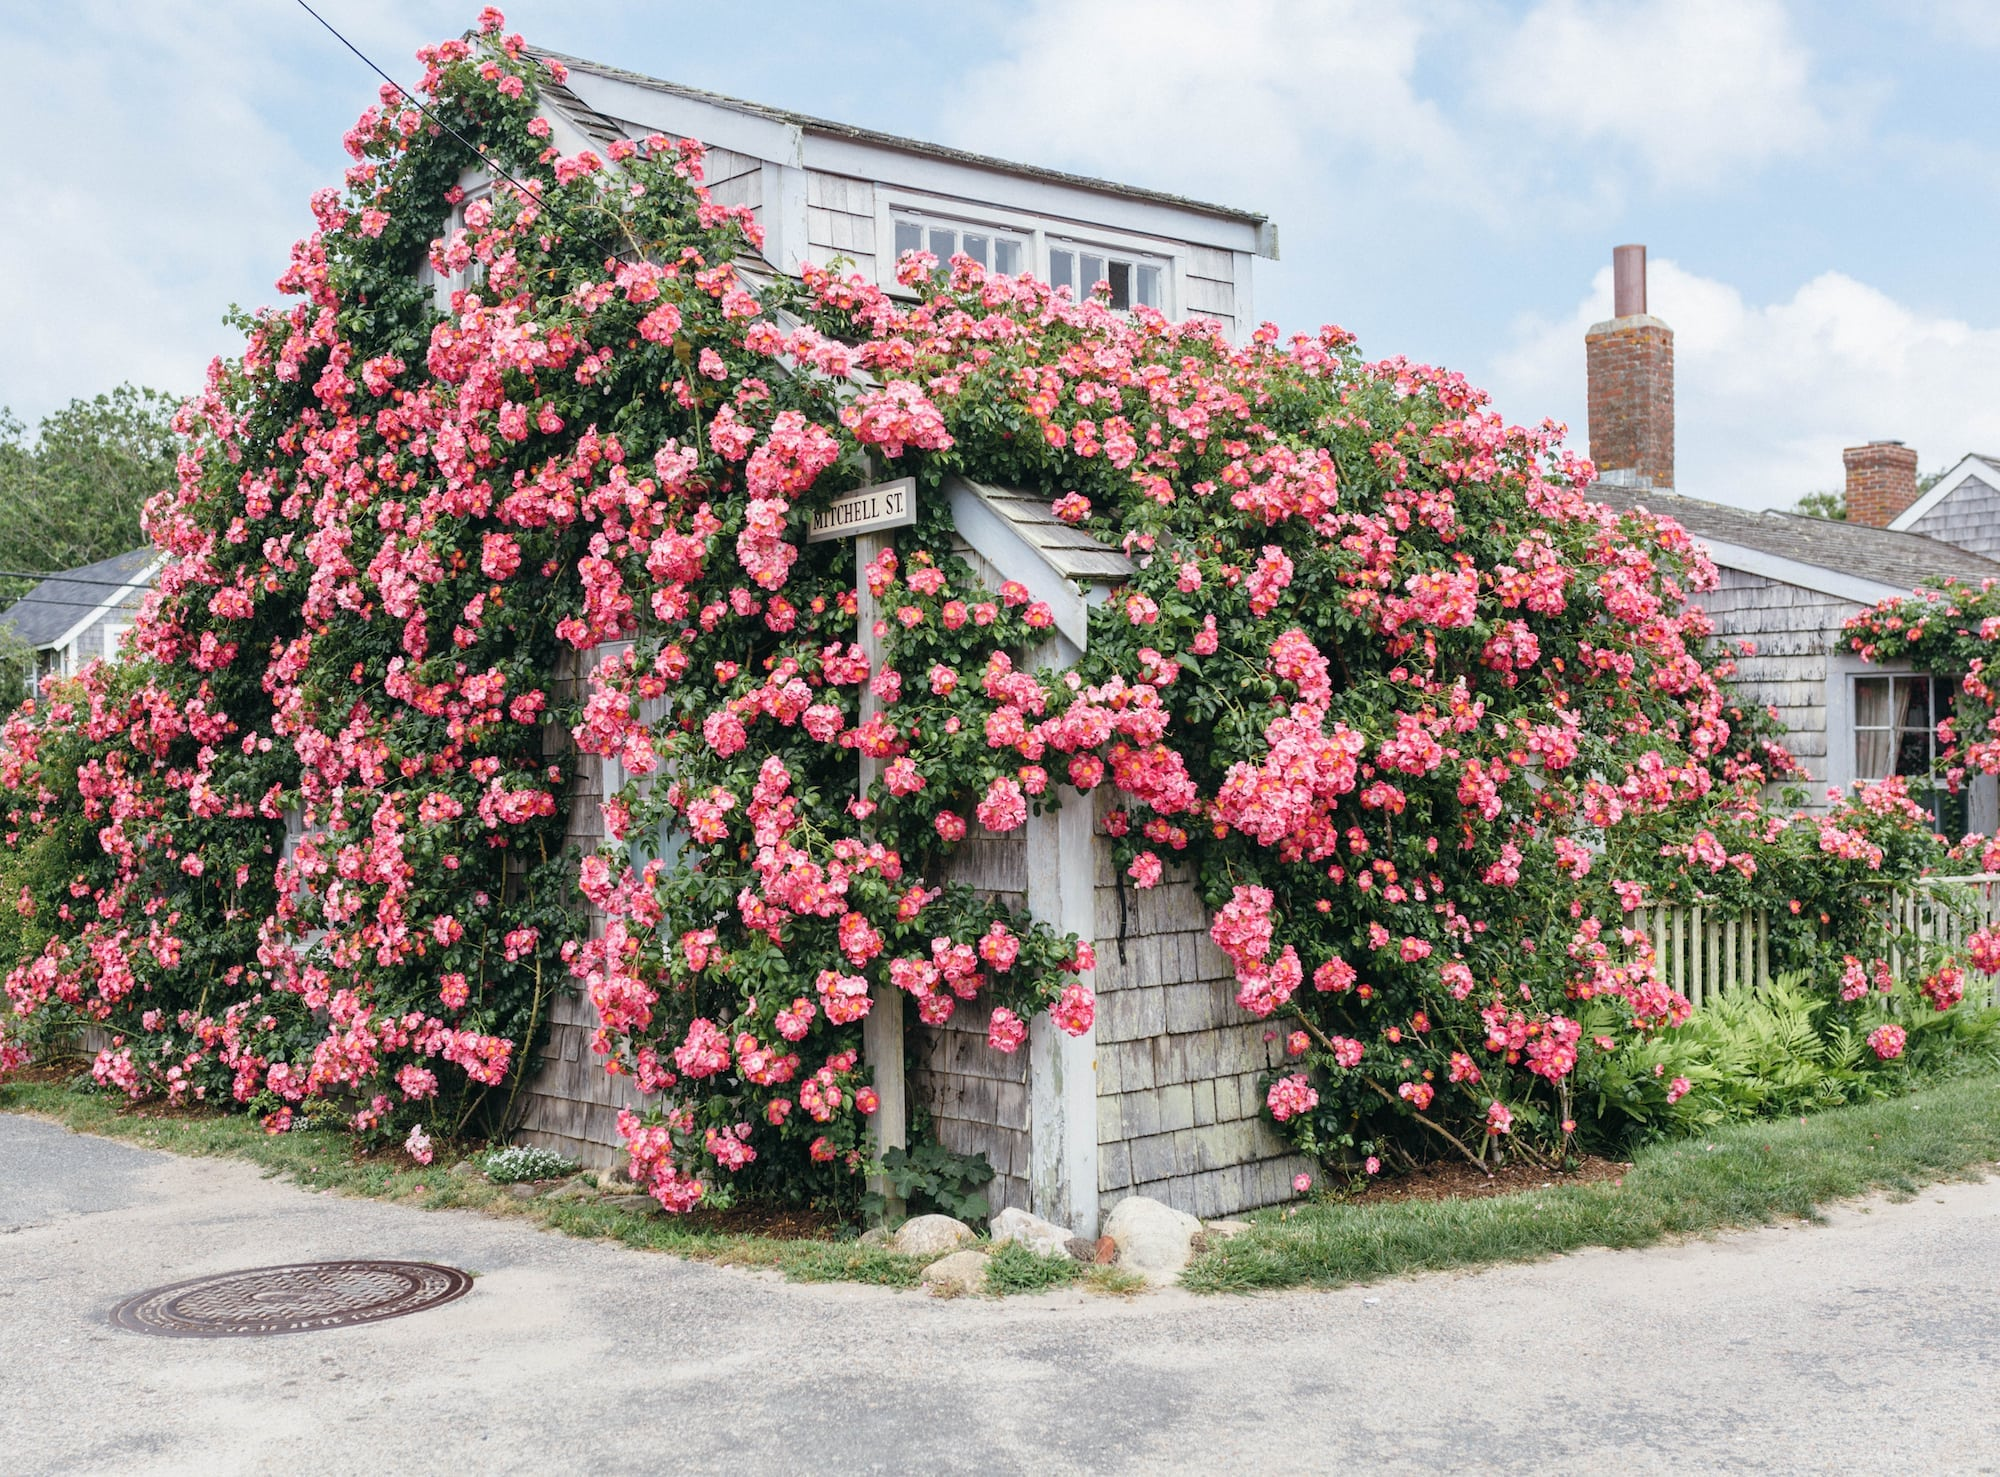 Nantucket Rose Covered House